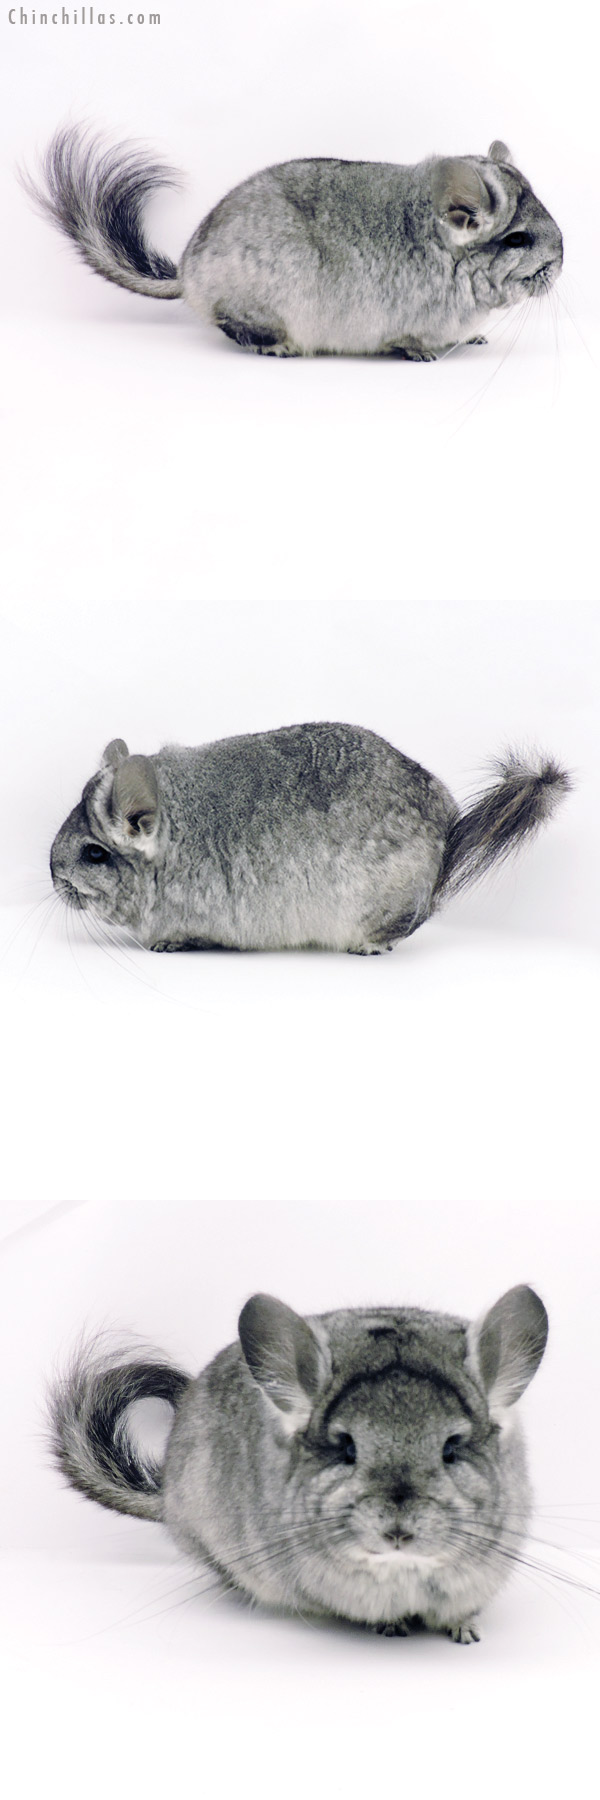 19331 Blocky Brevi Type Standard CCCU Royal Persian Angora Female Chinchilla